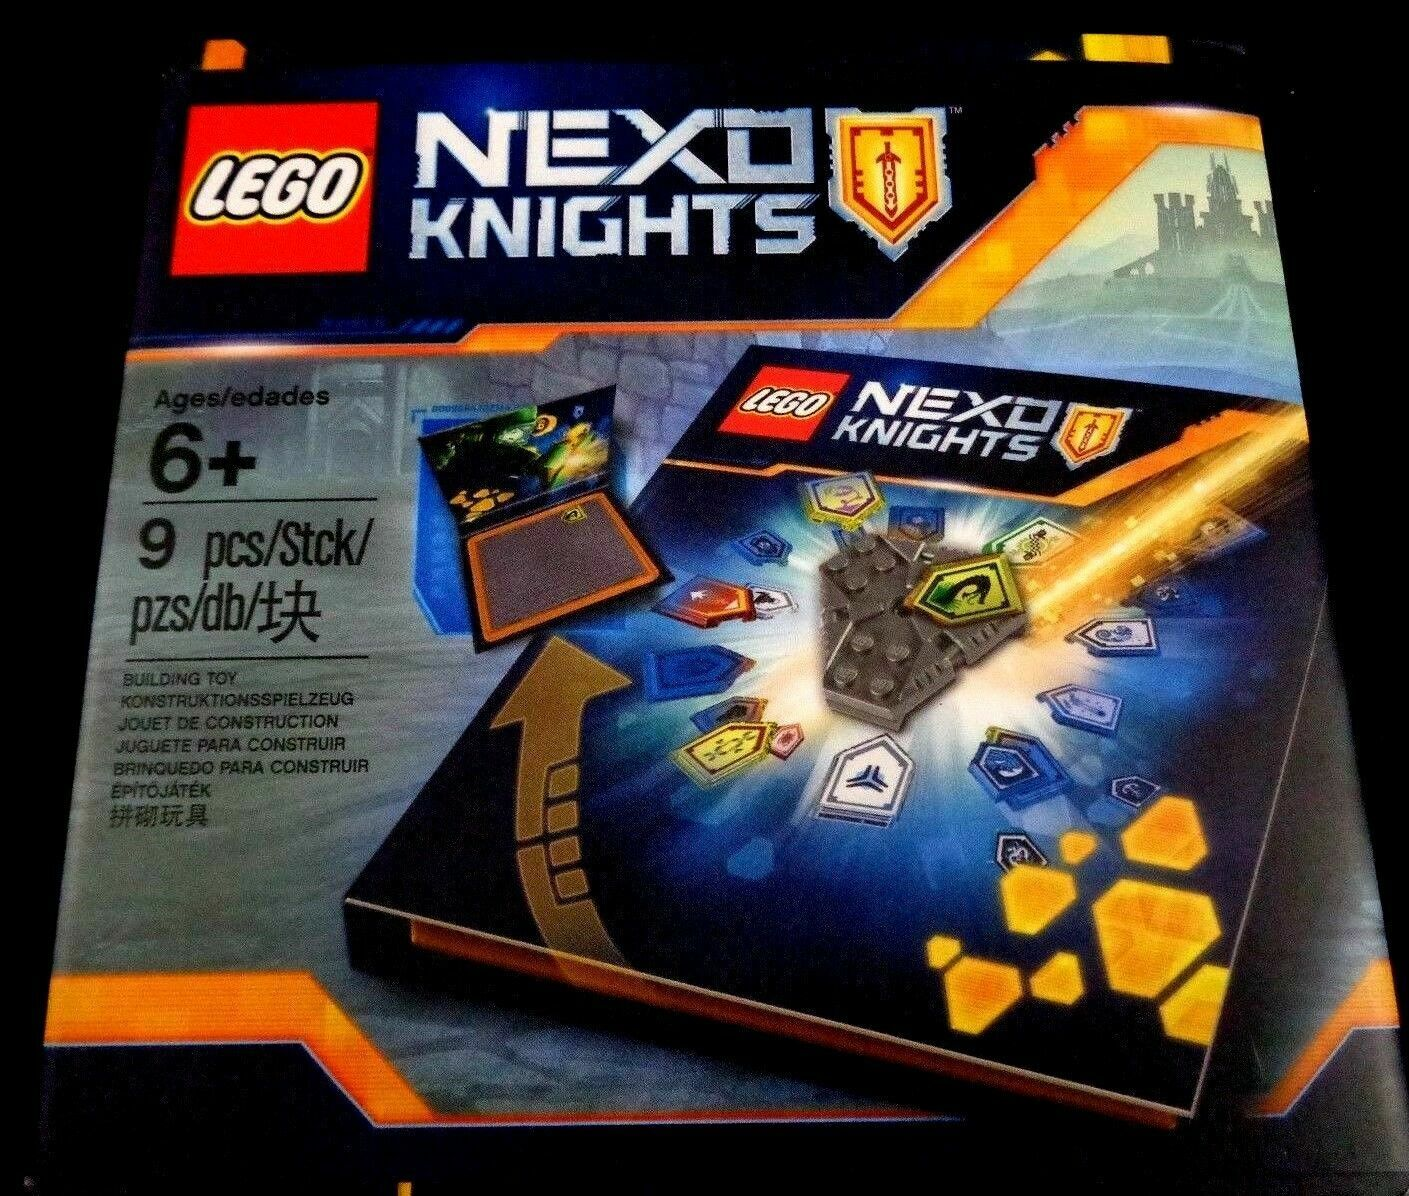 LEGO 5004913 NEXO KNIGHTS Collector Case Toy Game Boys New Merlok 2.0